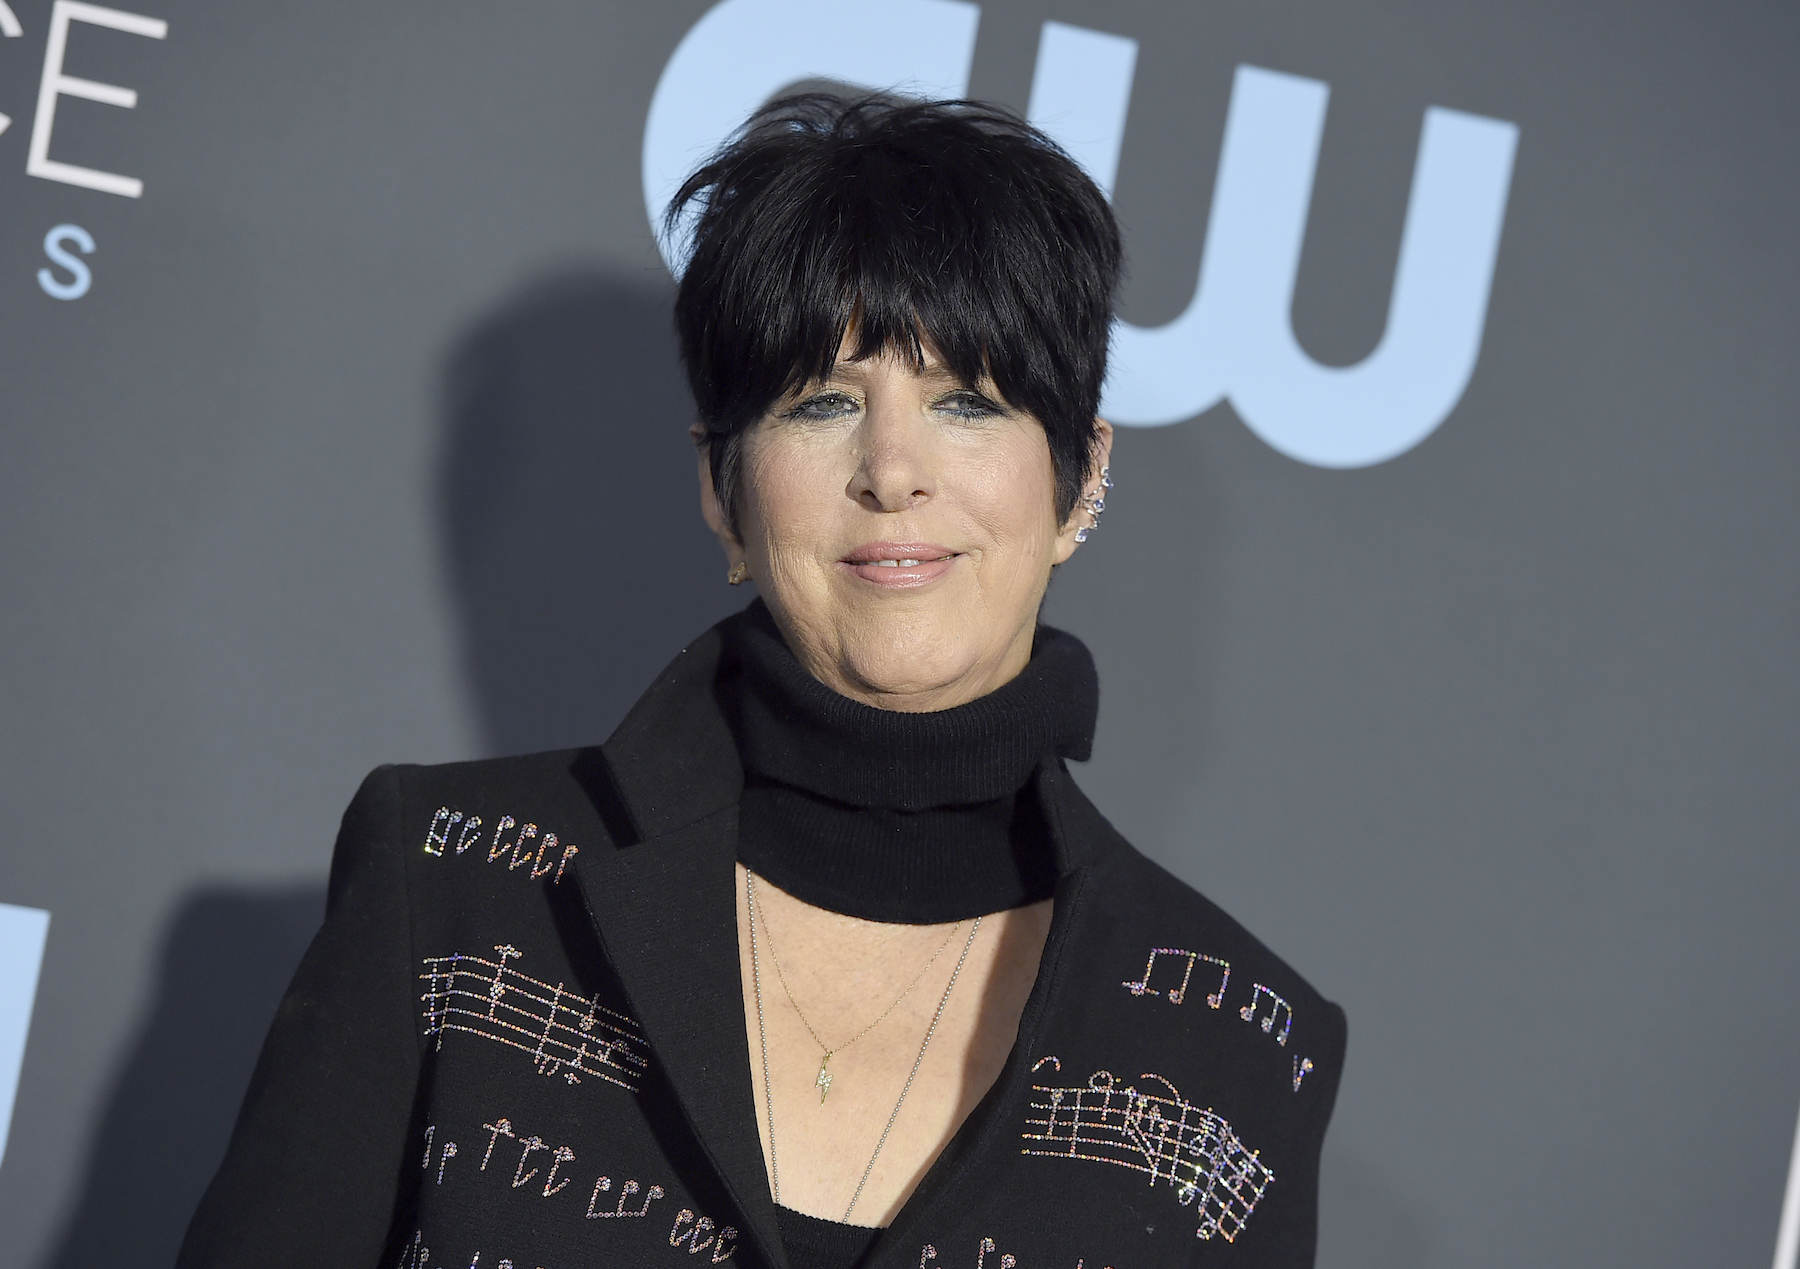 <div class='meta'><div class='origin-logo' data-origin='AP'></div><span class='caption-text' data-credit='Jordan Strauss/Invision/AP'>Diane Warren arrives at the 24th annual Critics' Choice Awards on Sunday, Jan. 13, 2019, at the Barker Hangar in Santa Monica, Calif.</span></div>